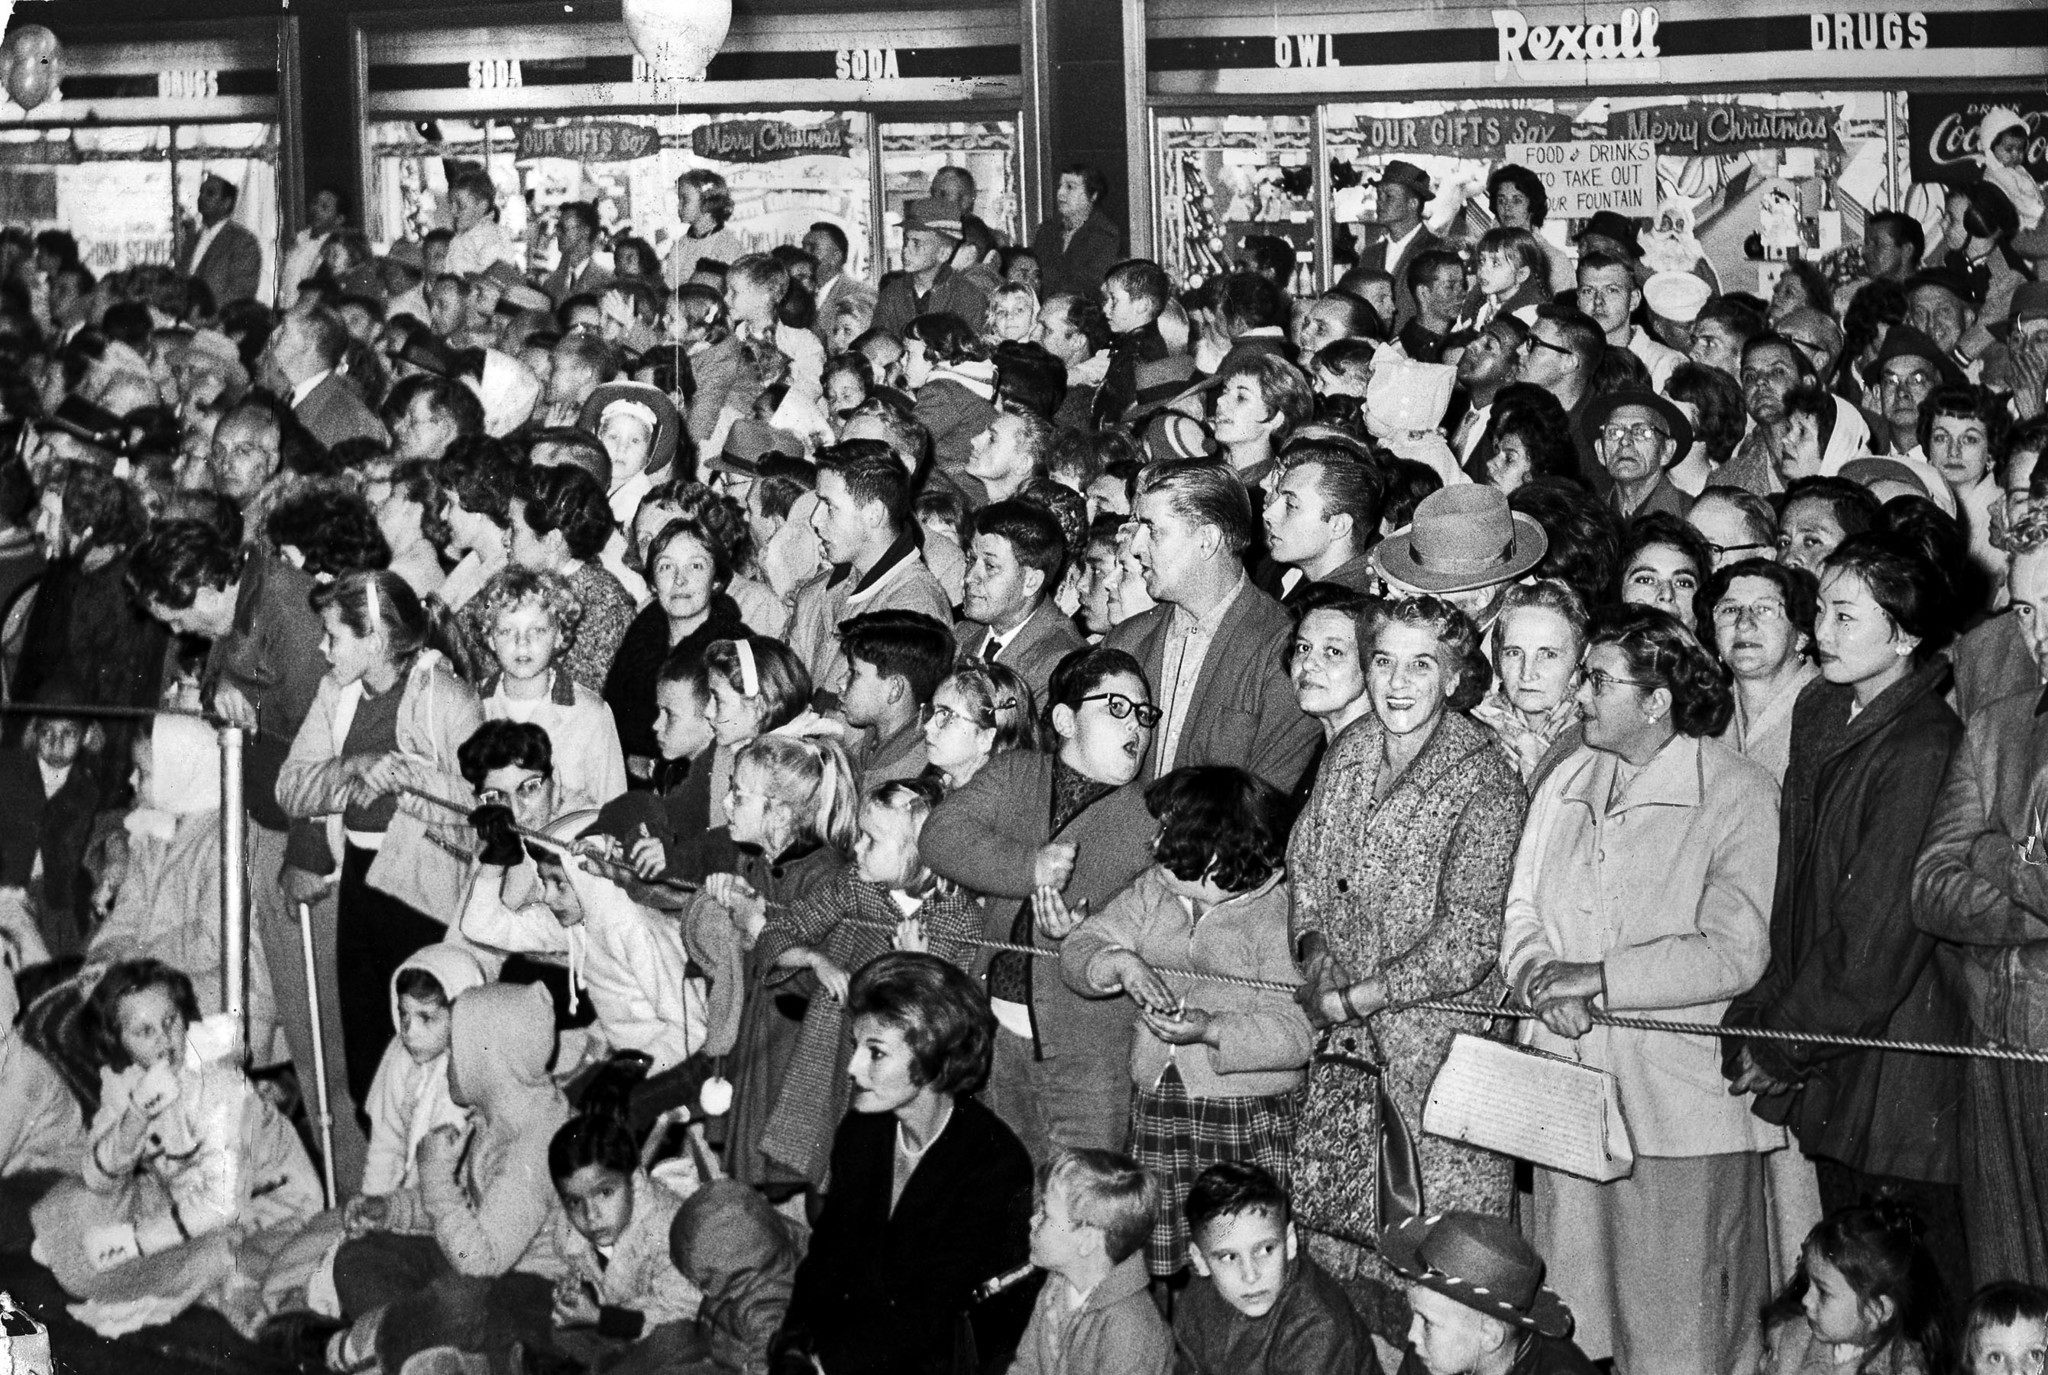 Nov. 22, 1961: Thousands of spectators gather to watch Santa Claus Lane parade file down Hollywood B